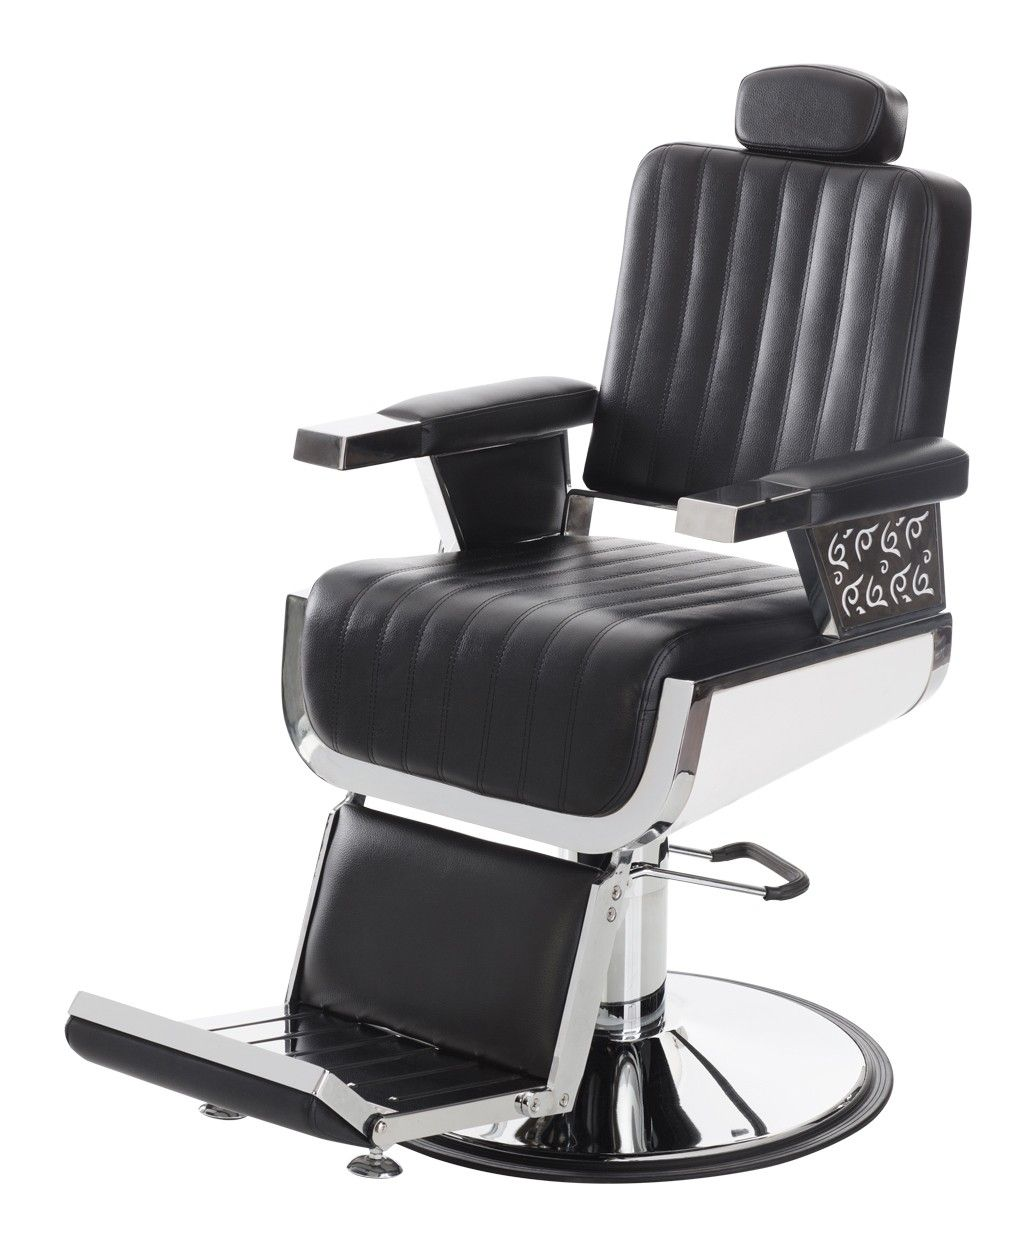 Omni Professional Barber Chair is a heavy duty classic barber chair with clean lines detailed upholstery and eye-popping chrome. | $745  sc 1 st  Pinterest & Omni Professional Barber Chair | Buy-Rite Beauty | Barber chair ...